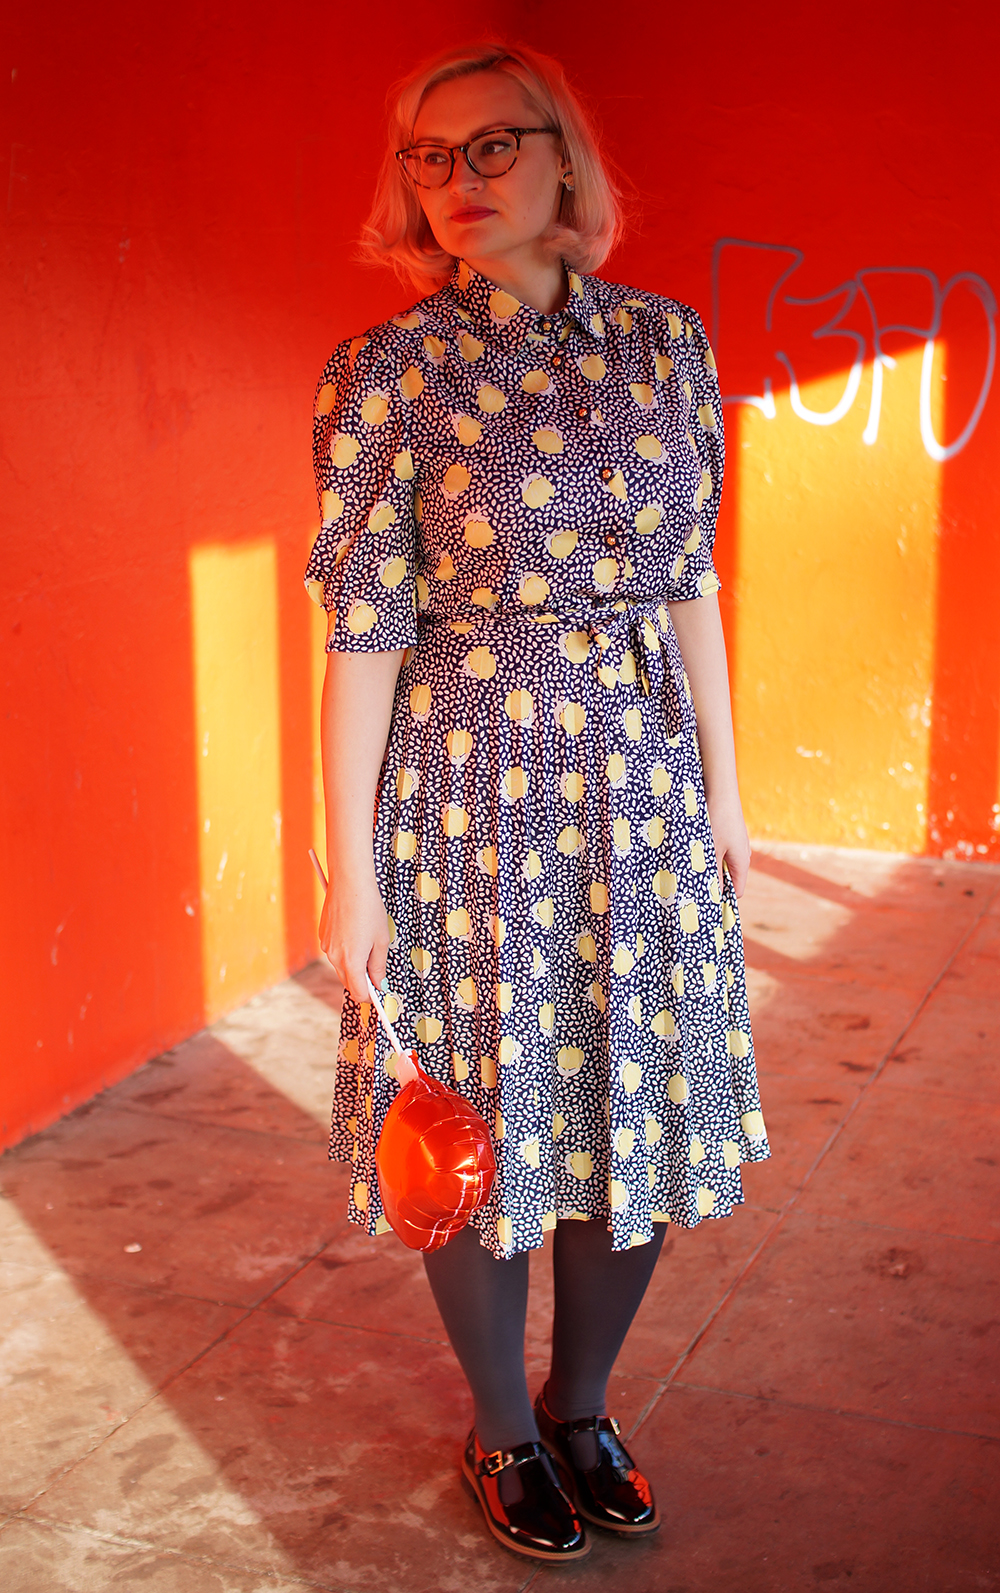 Vintage Kilo Sale, modern vintage style, blogger tips, comparison, envy in blogging, IOLLA glasses, Edinburgh Princes Street gardens, lemon print dress, Picasso earrings